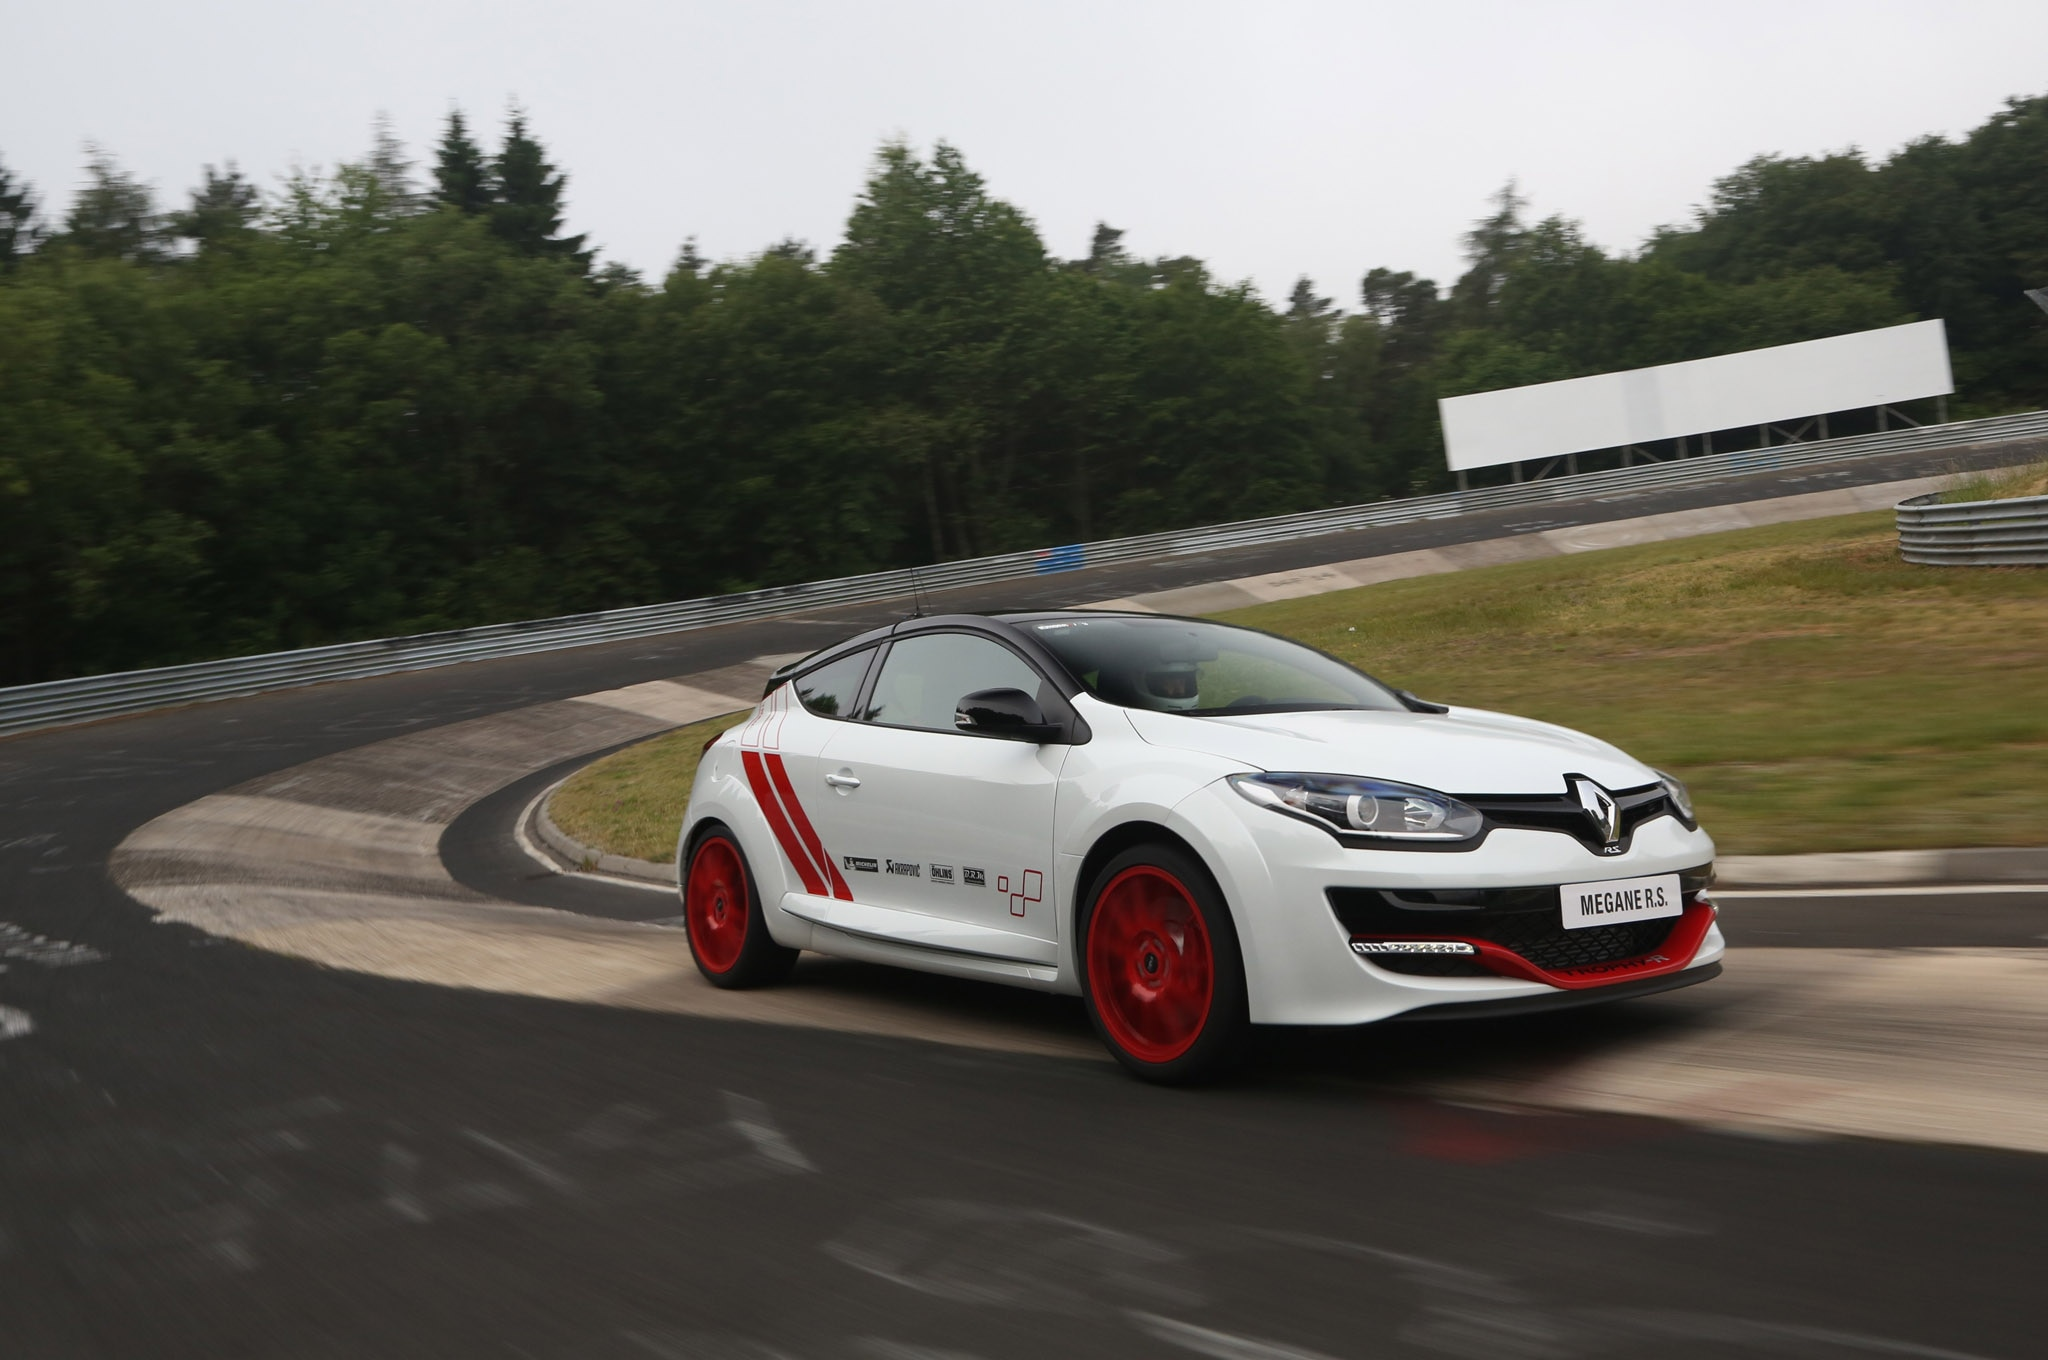 renault megane r s 275 trophy r is the new hot hatch to beat. Black Bedroom Furniture Sets. Home Design Ideas